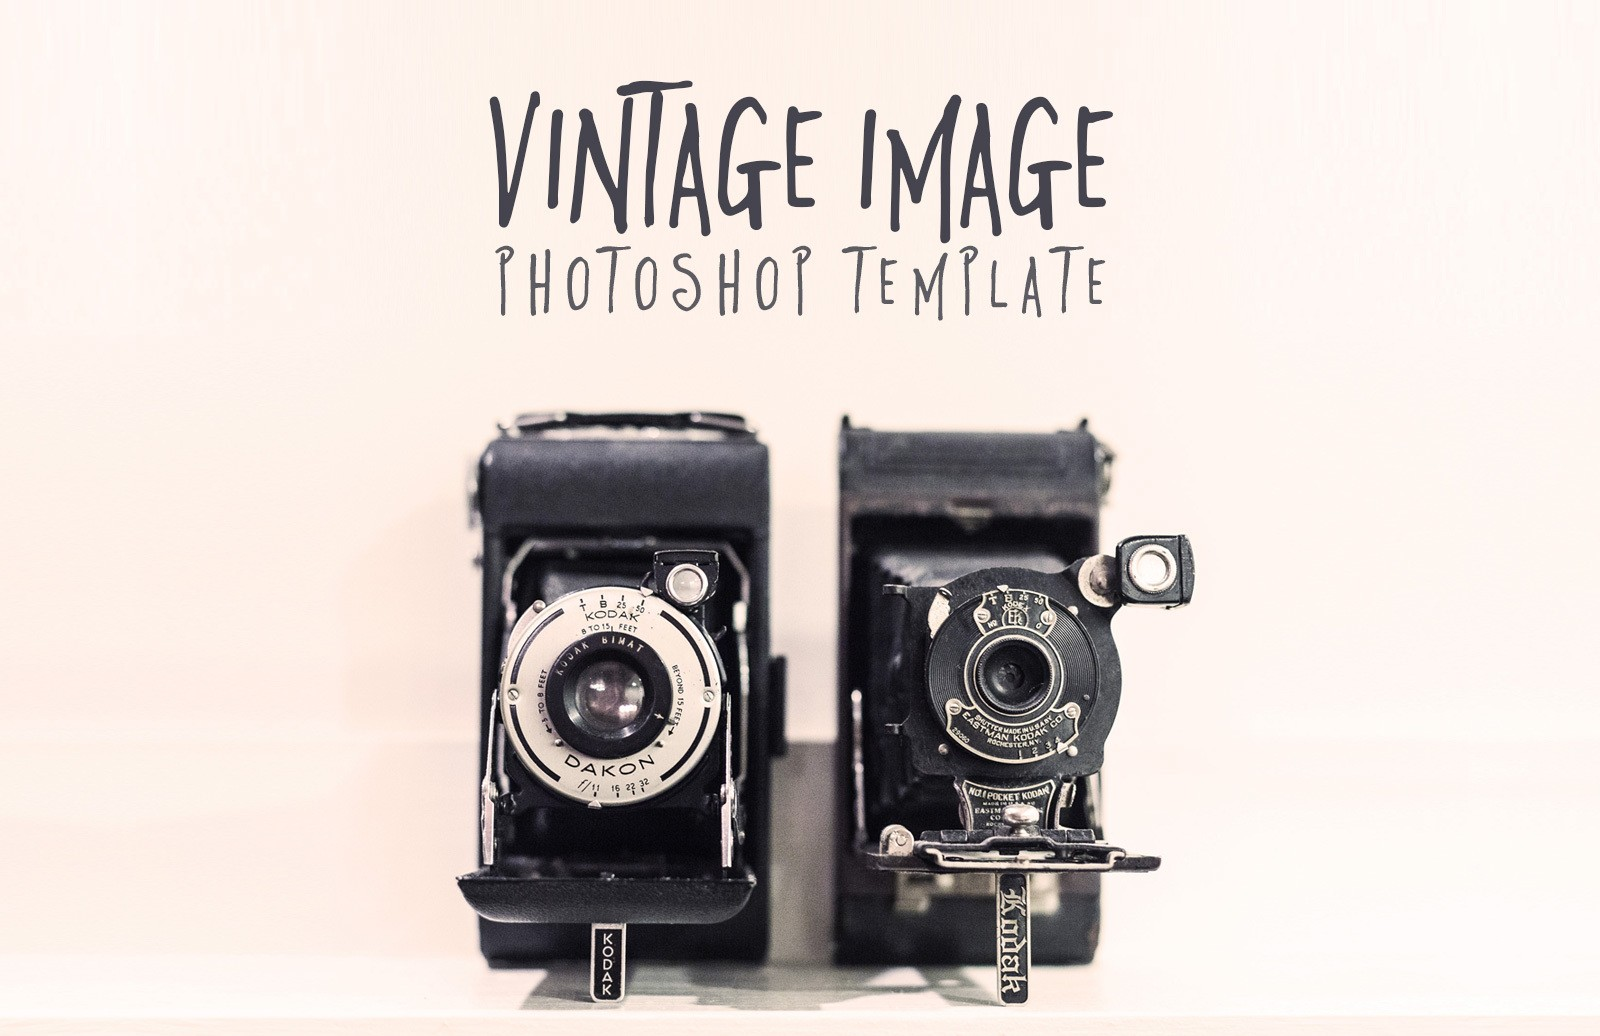 Vintage Image Photoshop Template Preview 1